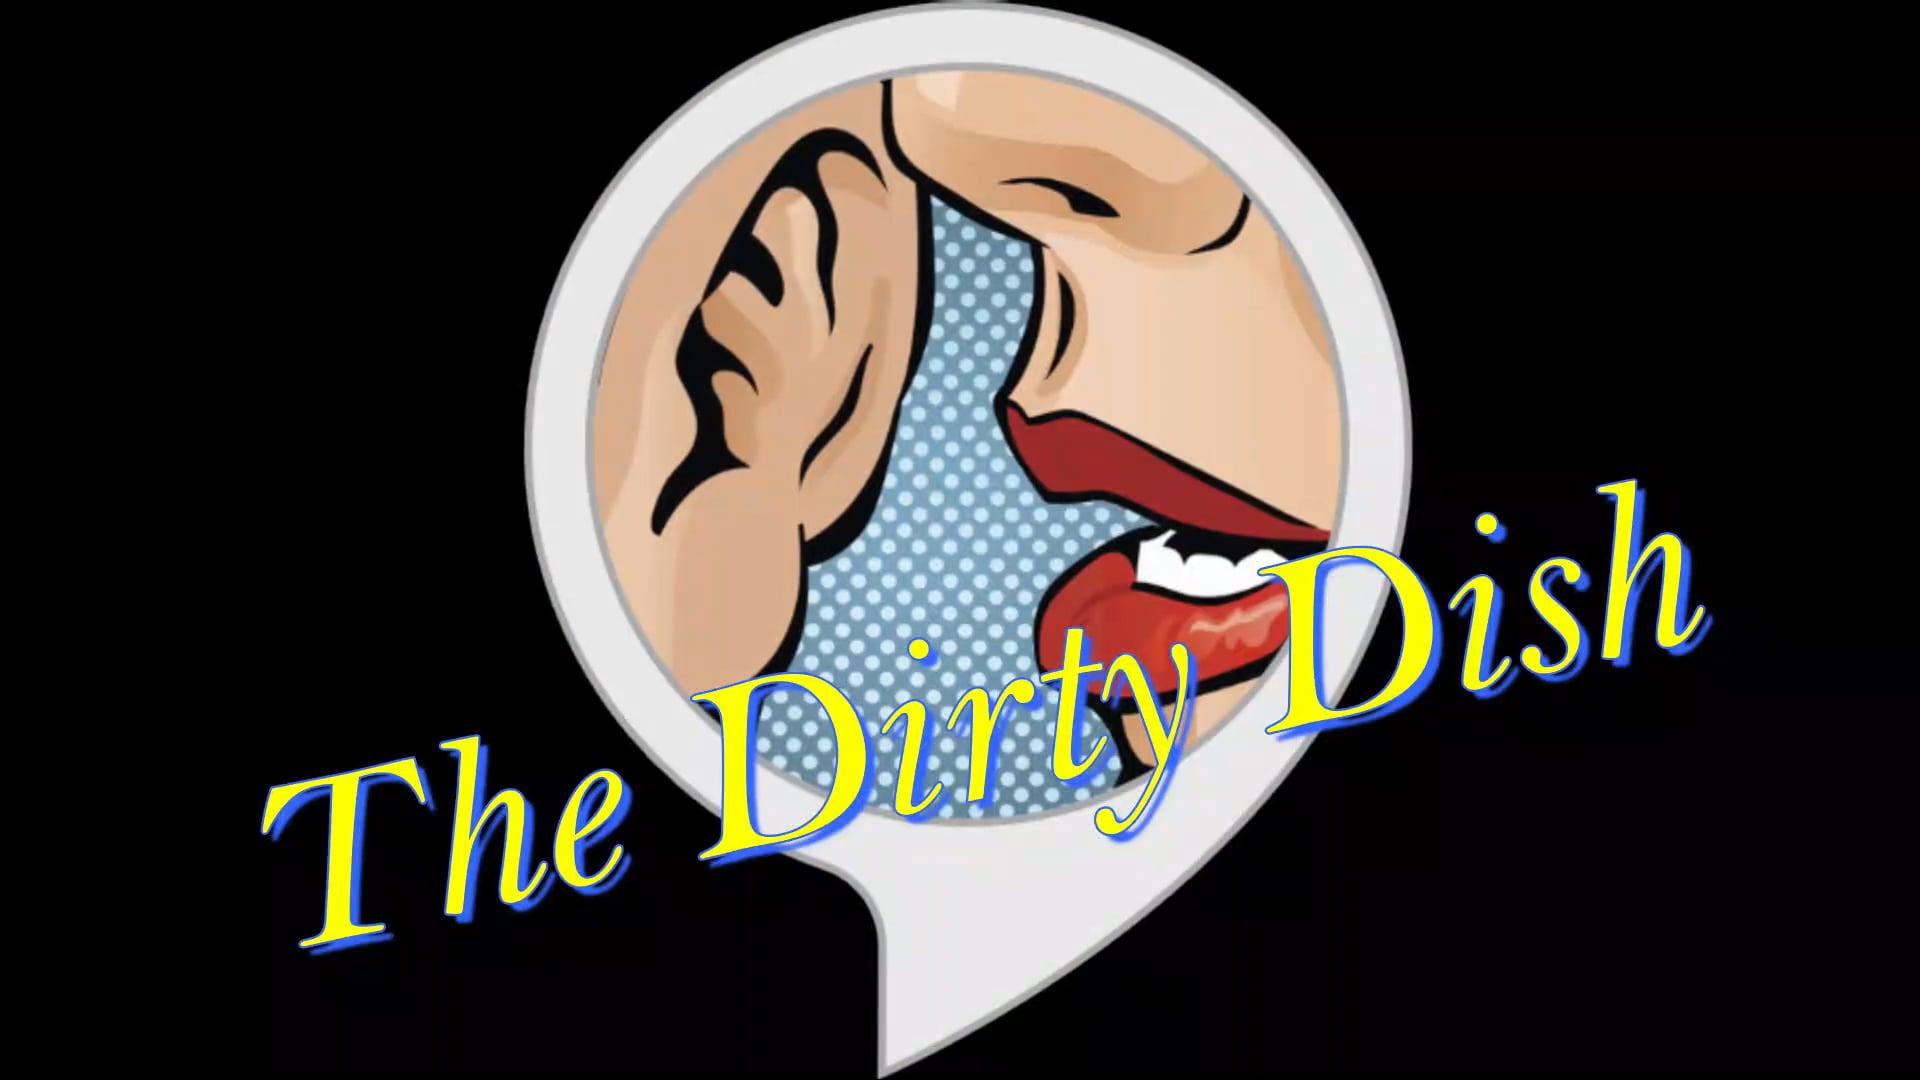 The Dirty Dish - Episode 2